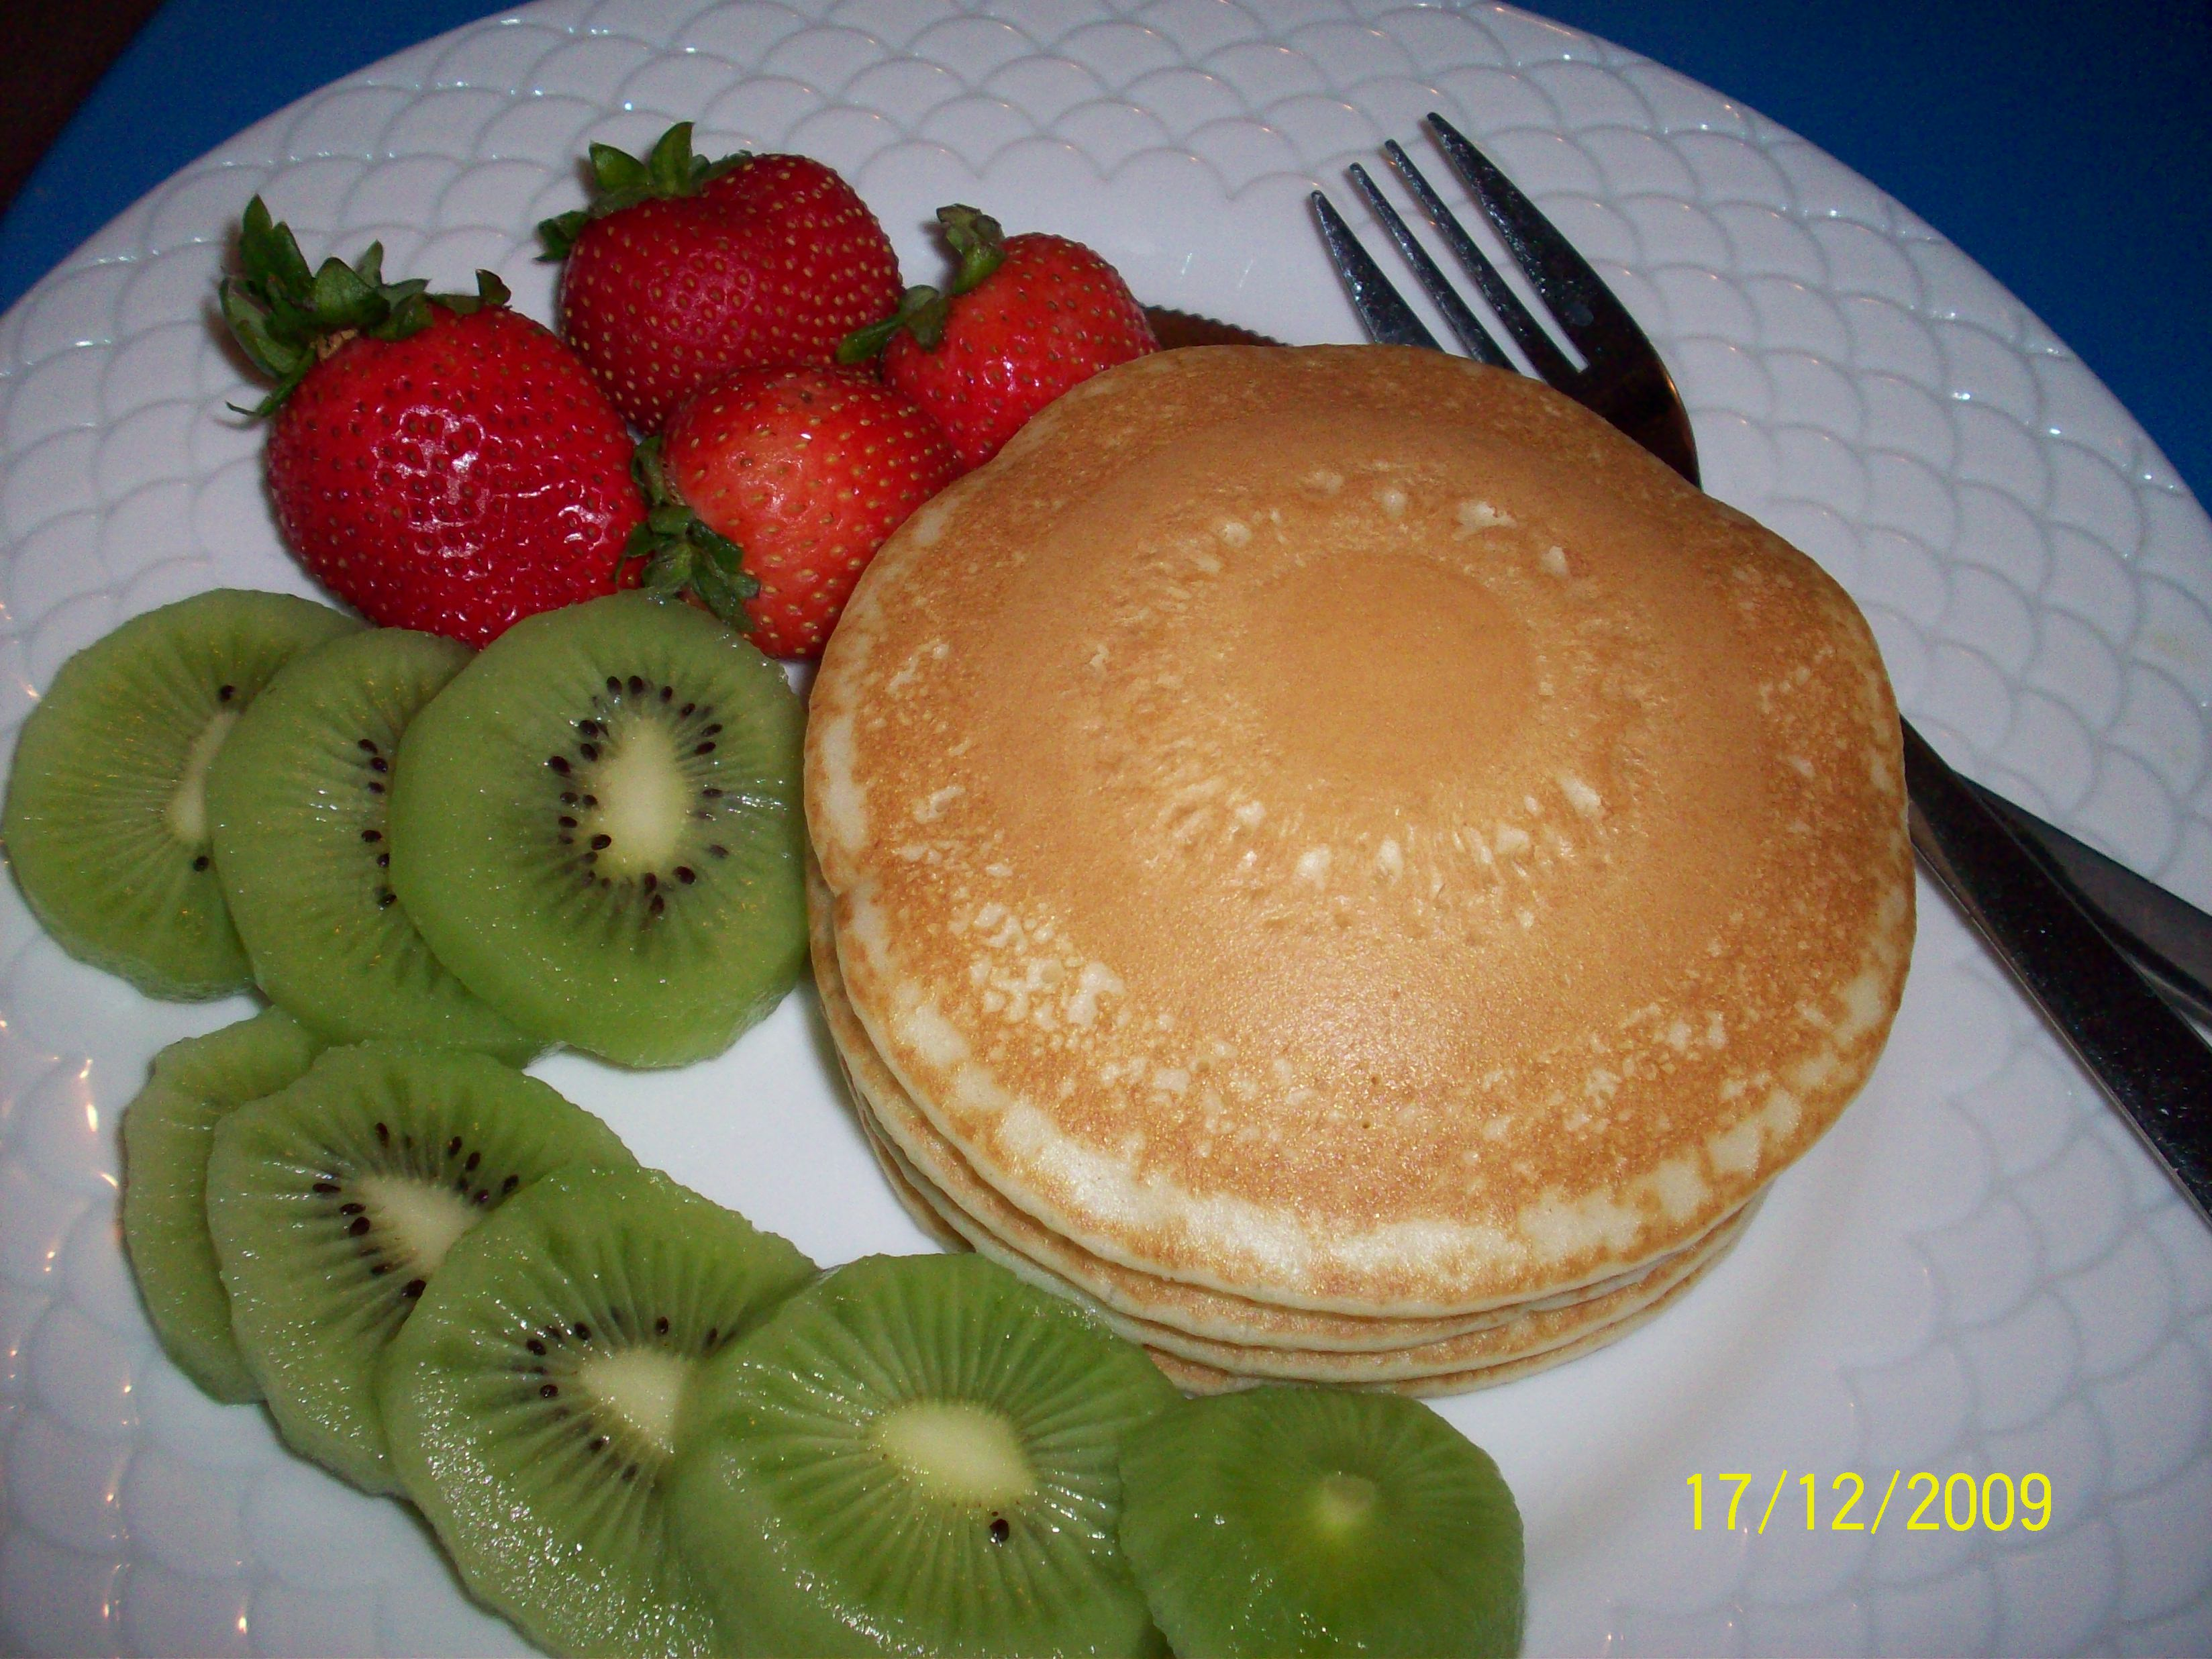 https://foodloader.net/cutie_2009-12-17_Pancakes__Strawberries_and_Kiwi.jpg